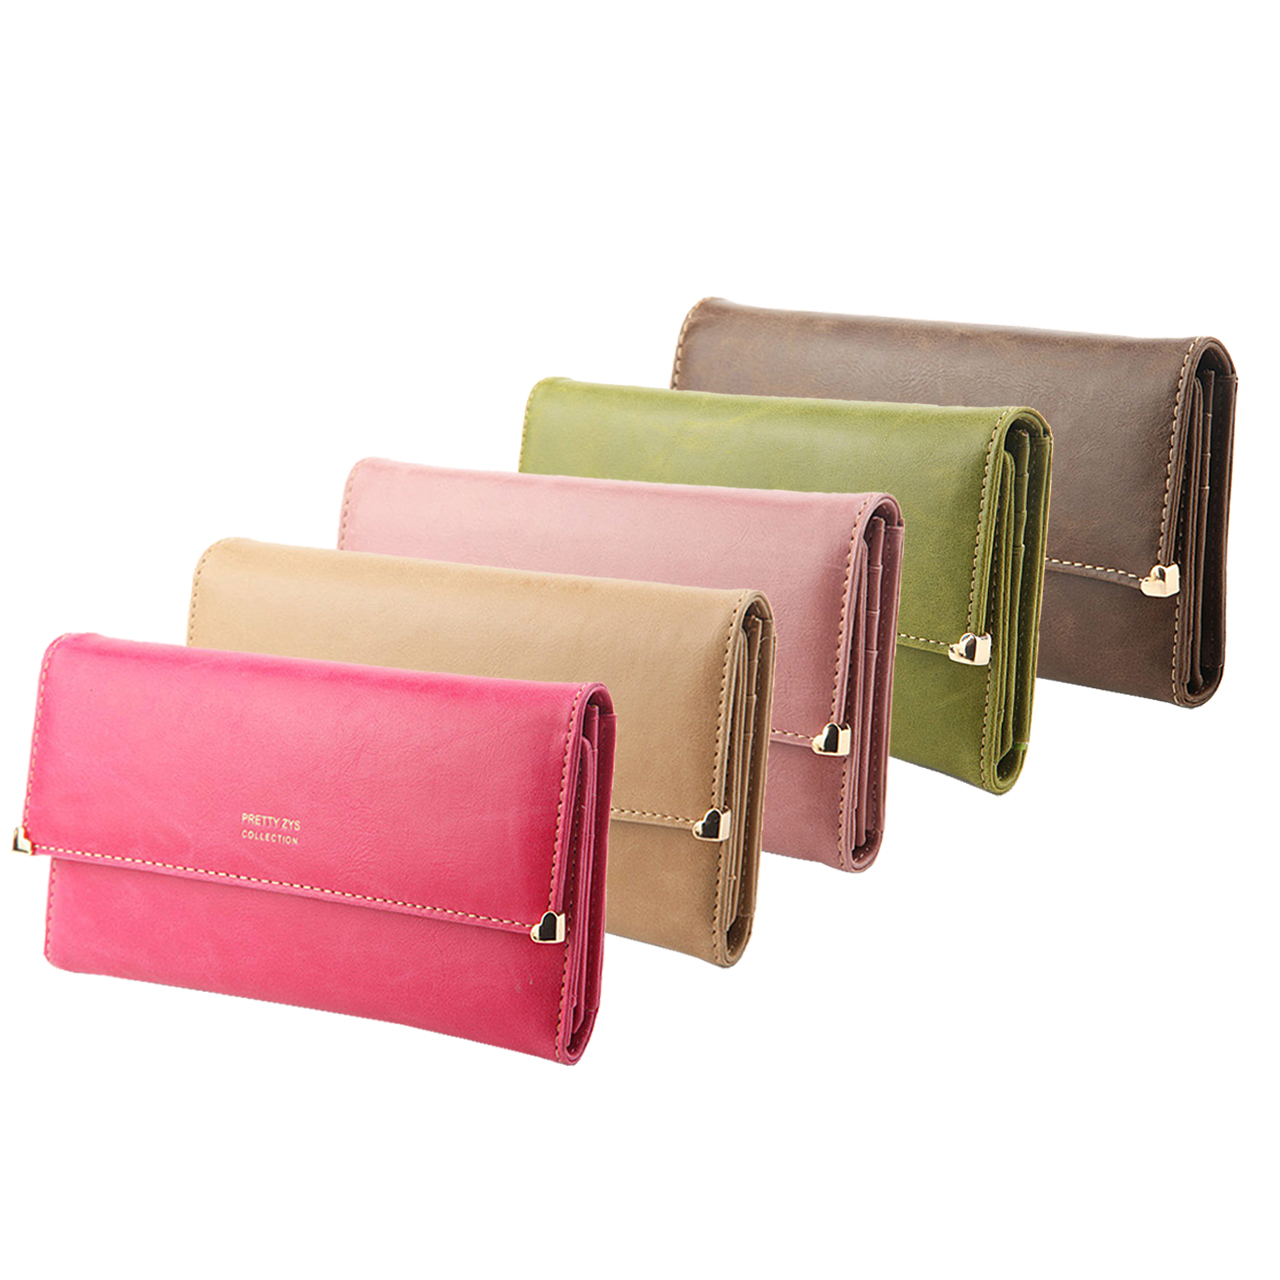 Womens-Clutch-Matte-Leather-Wallet-Lady-Card-Purse-Handbag-Candy-7-Colors